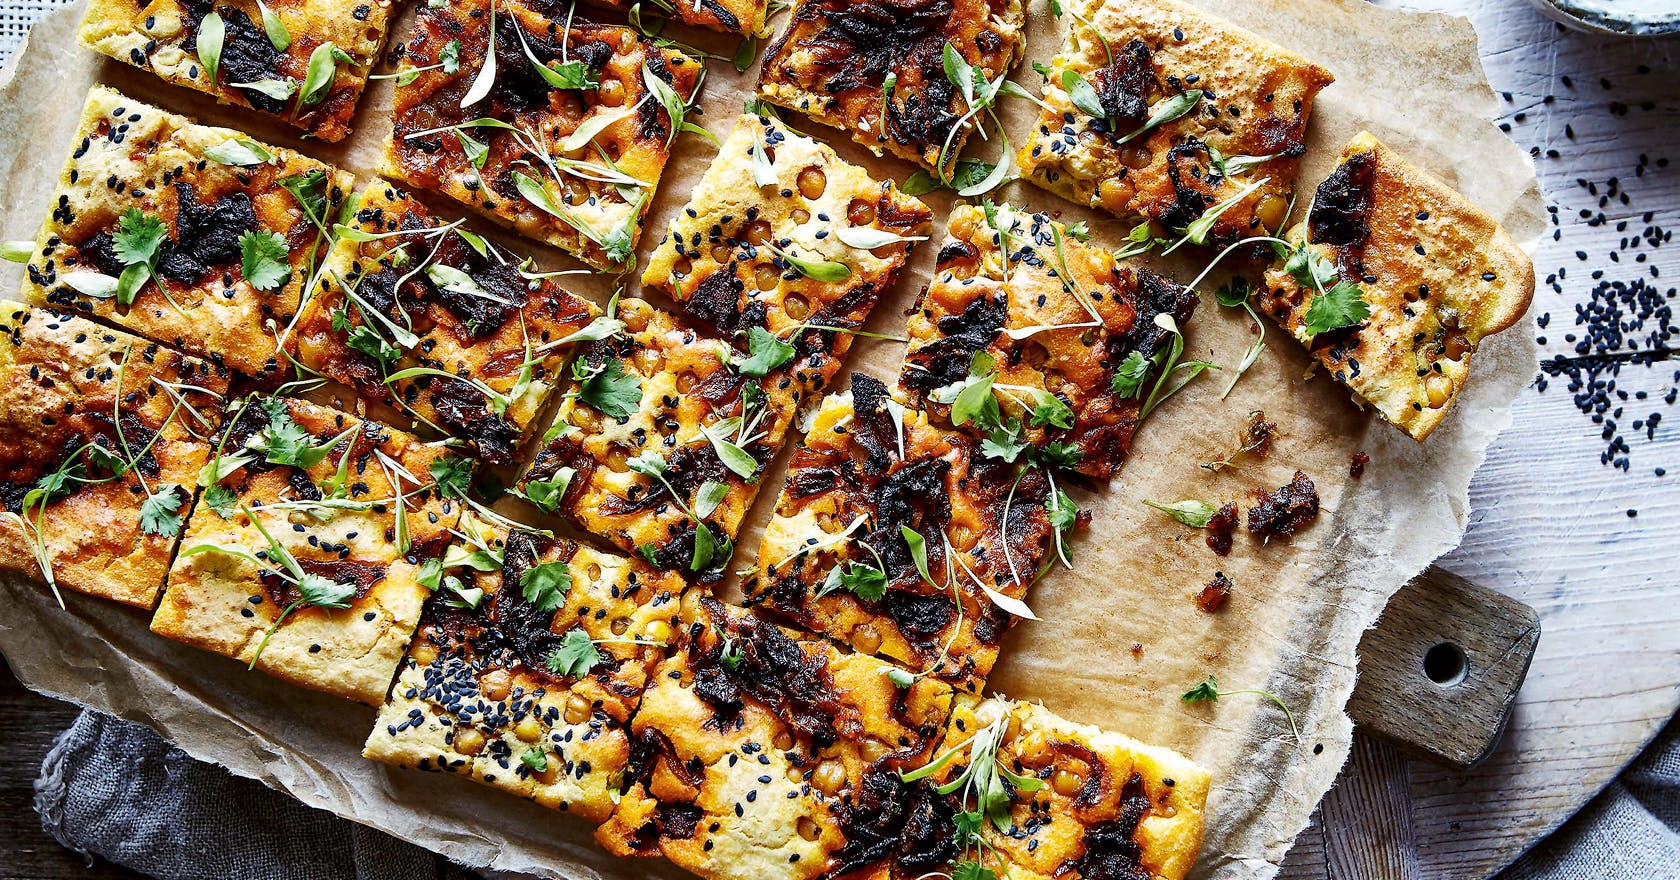 Quick and easy flatbread recipe for post-workout recovery